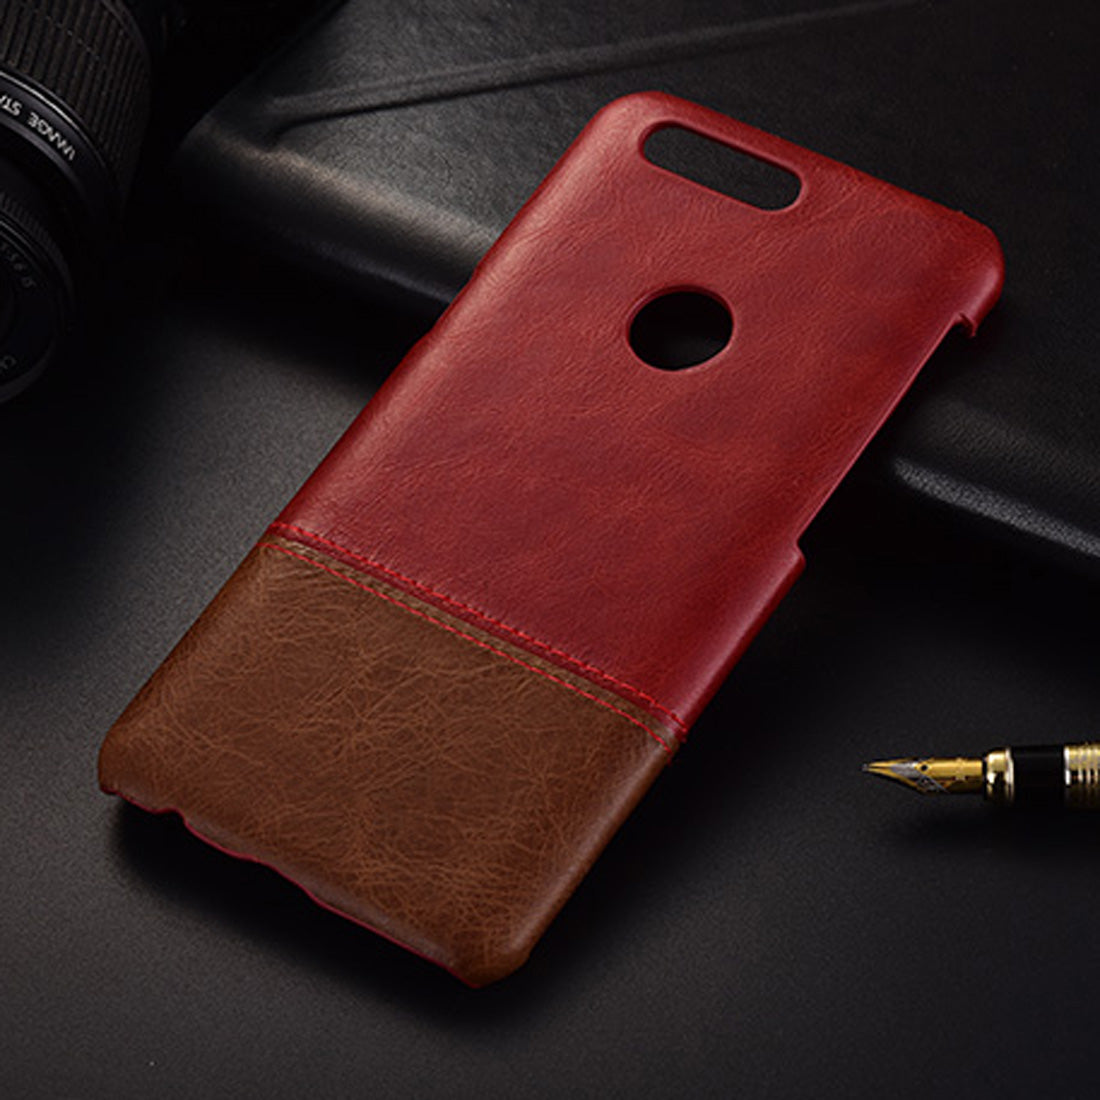 Genuine Leather Dual Color Premium Protective Case Cover for Oneplus 5T - Wine Red , Brown - Mobizang